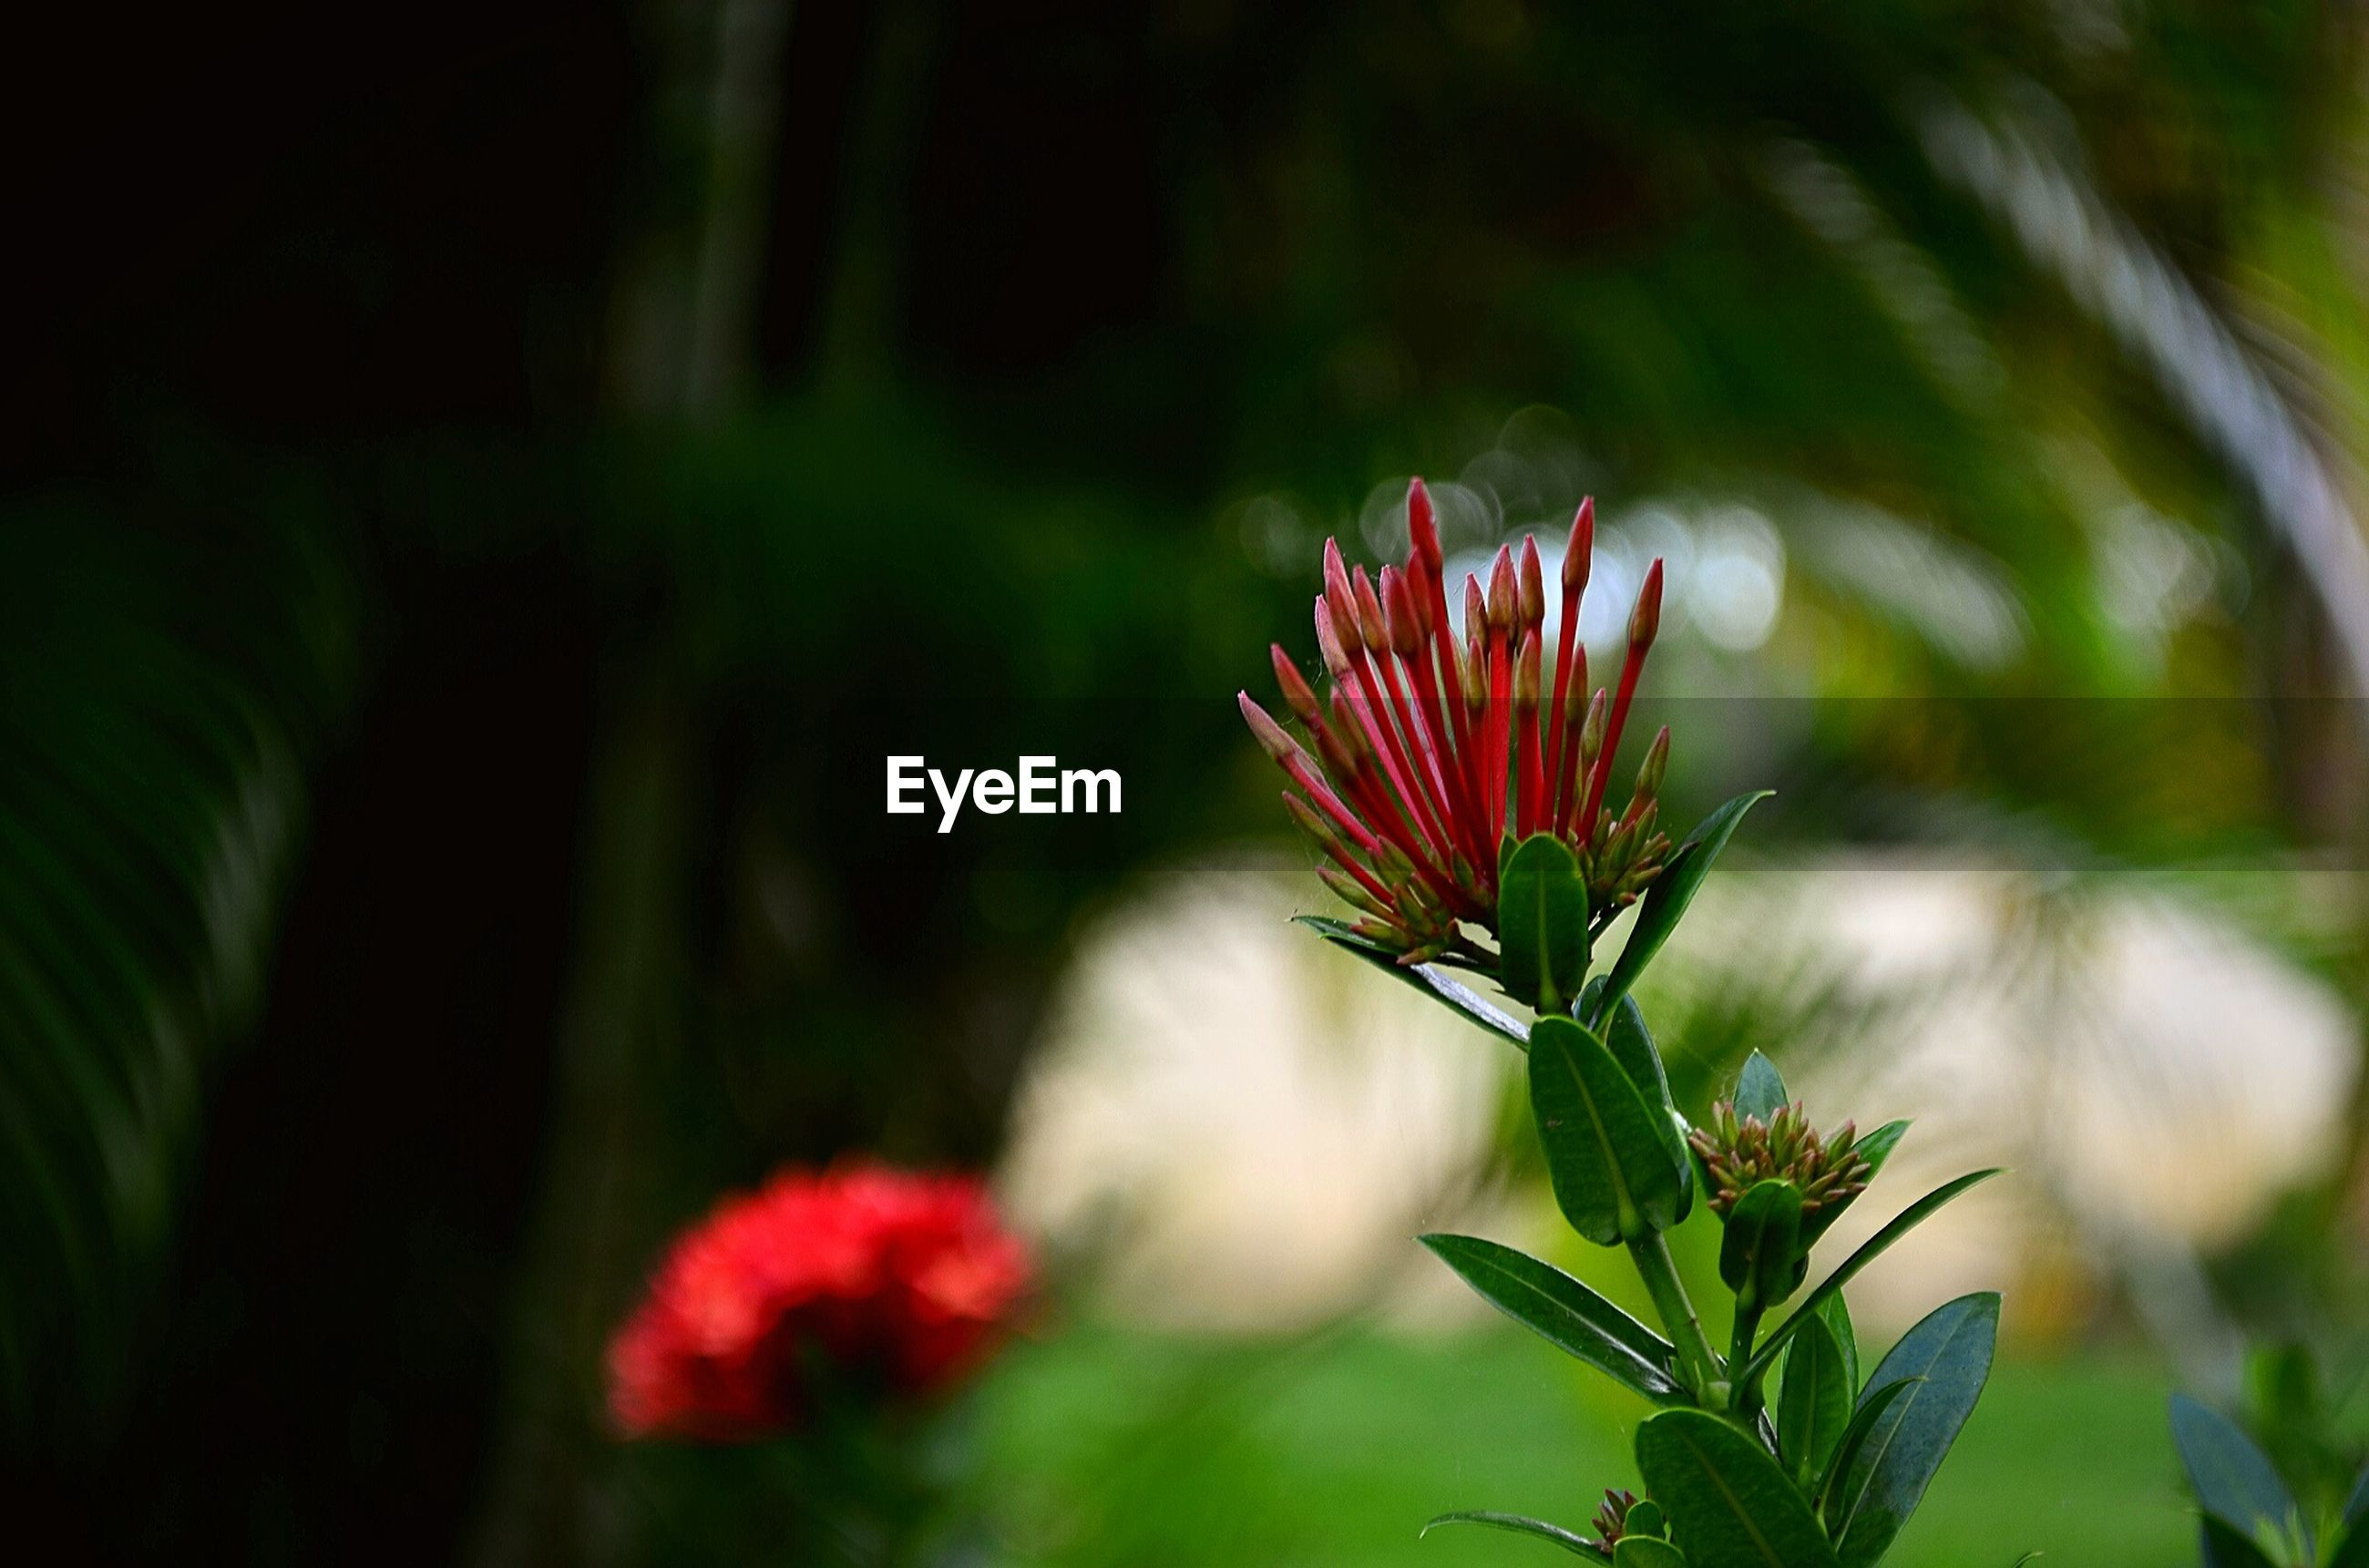 flower, freshness, growth, petal, fragility, plant, focus on foreground, beauty in nature, flower head, close-up, red, nature, blooming, stem, leaf, in bloom, selective focus, bud, botany, green color